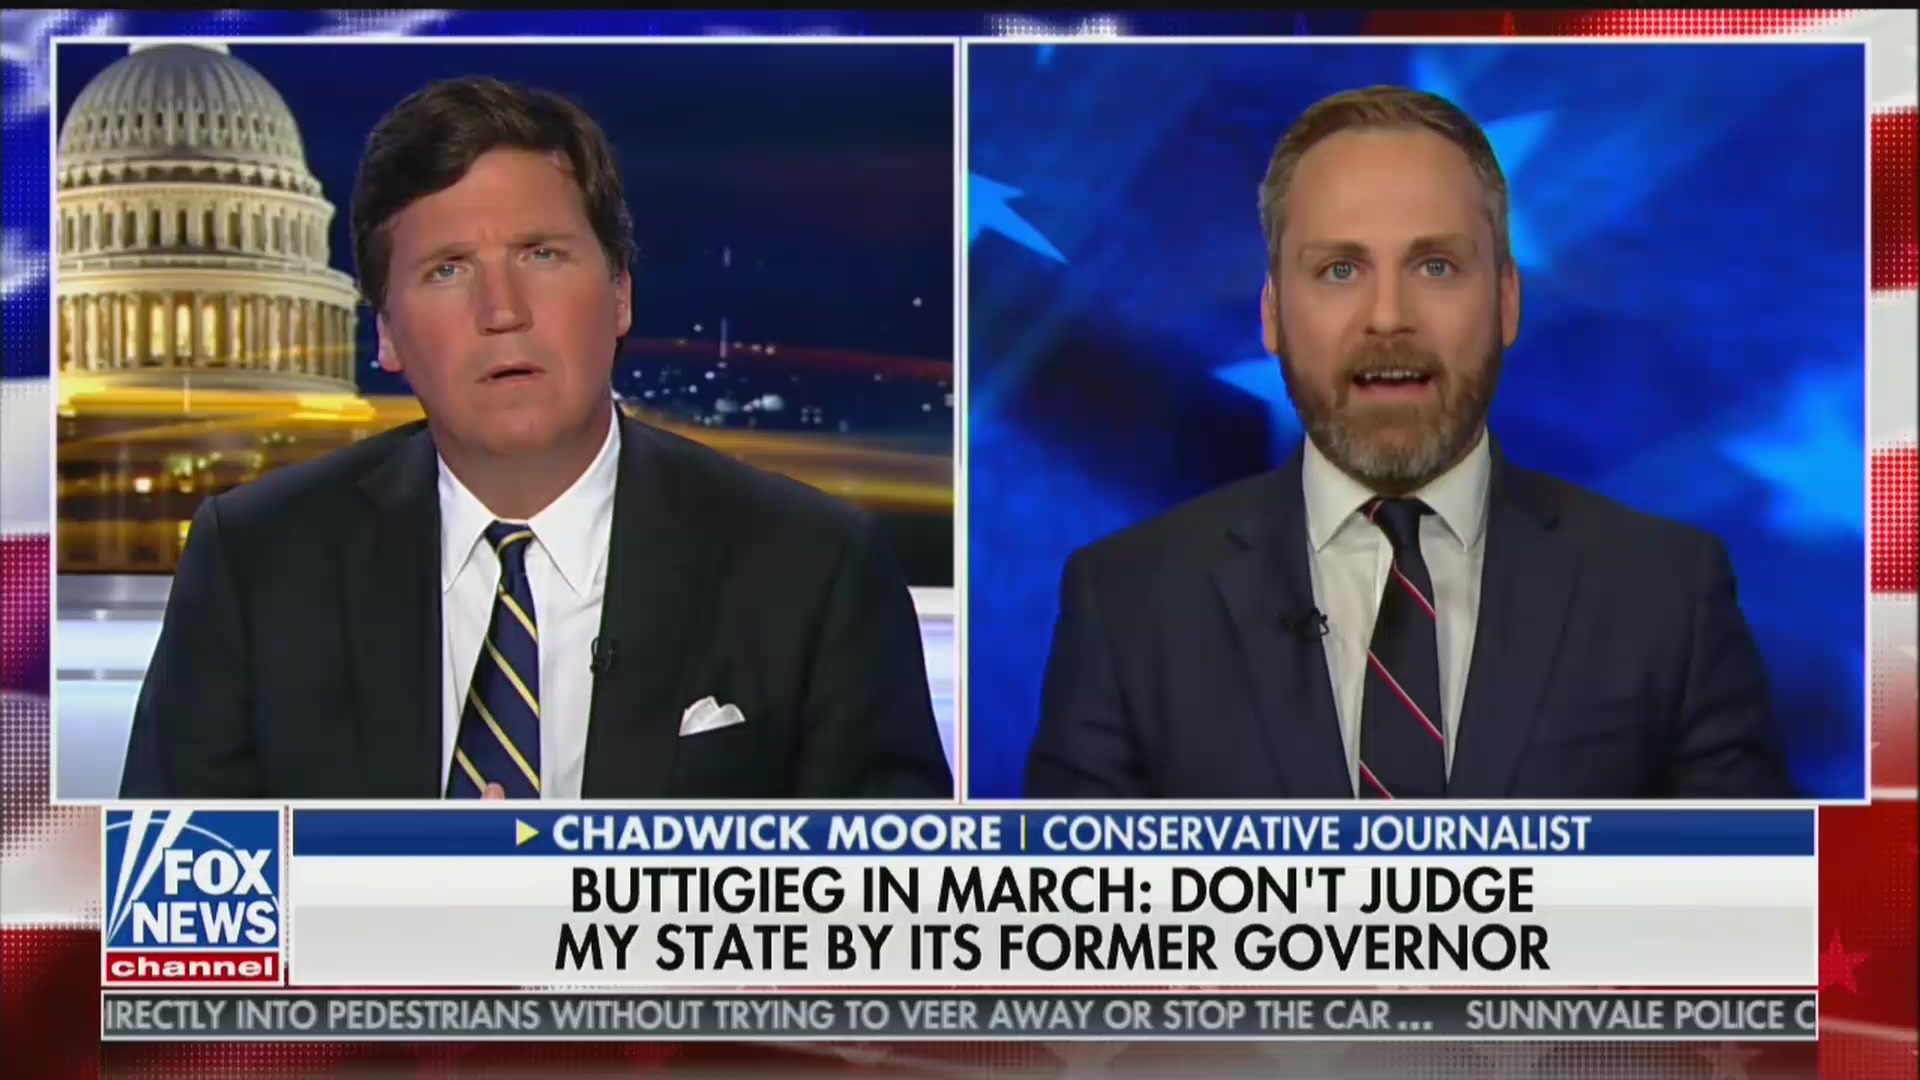 Tucker Carlson Guest: Islam Is the 'Most Hateful Intolerant Religion on Earth'